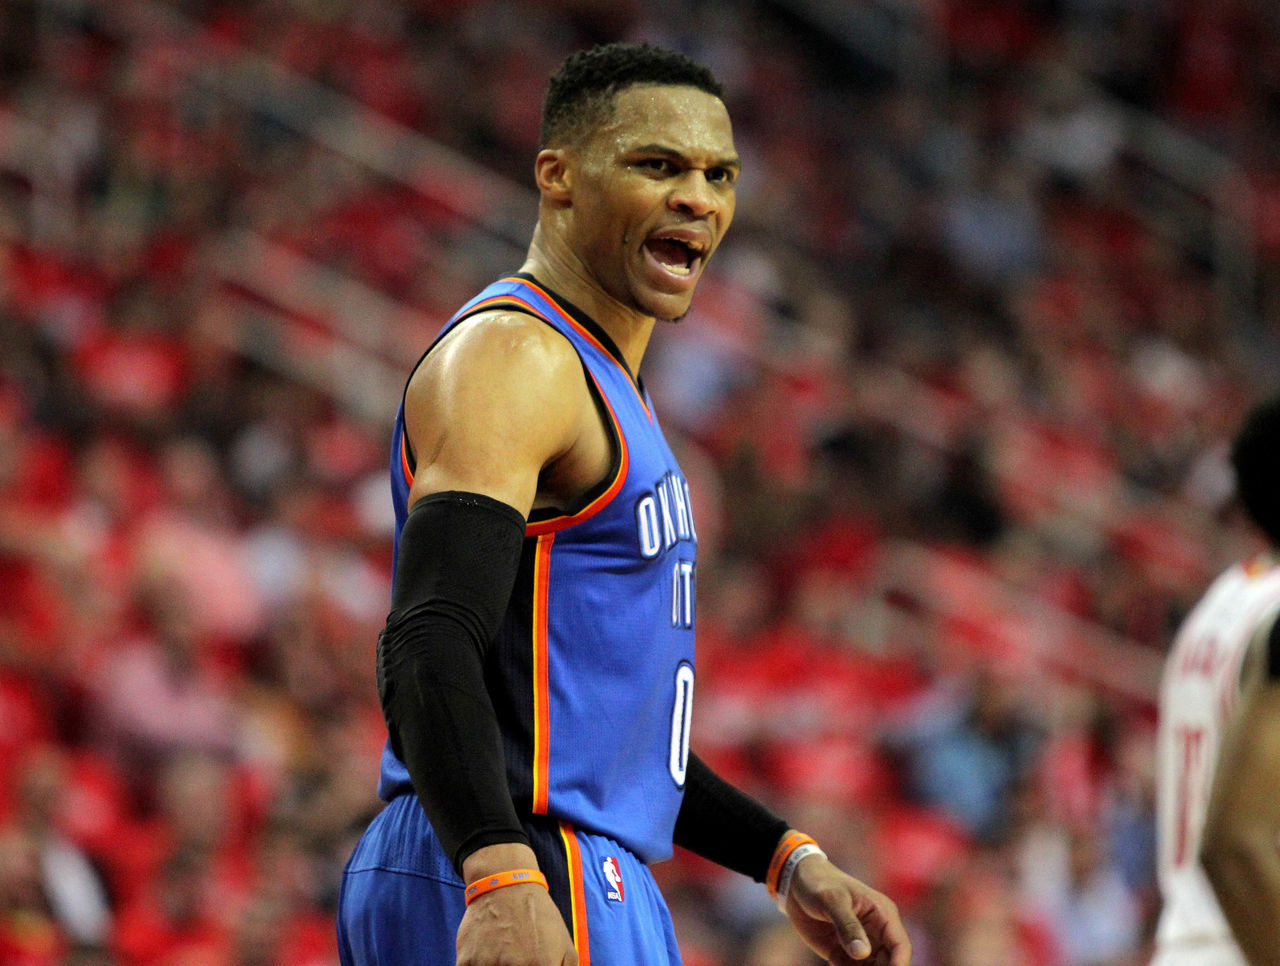 Cropped_2017-04-20t012752z_704621211_nocid_rtrmadp_3_nba-playoffs-oklahoma-city-thunder-at-houston-rockets